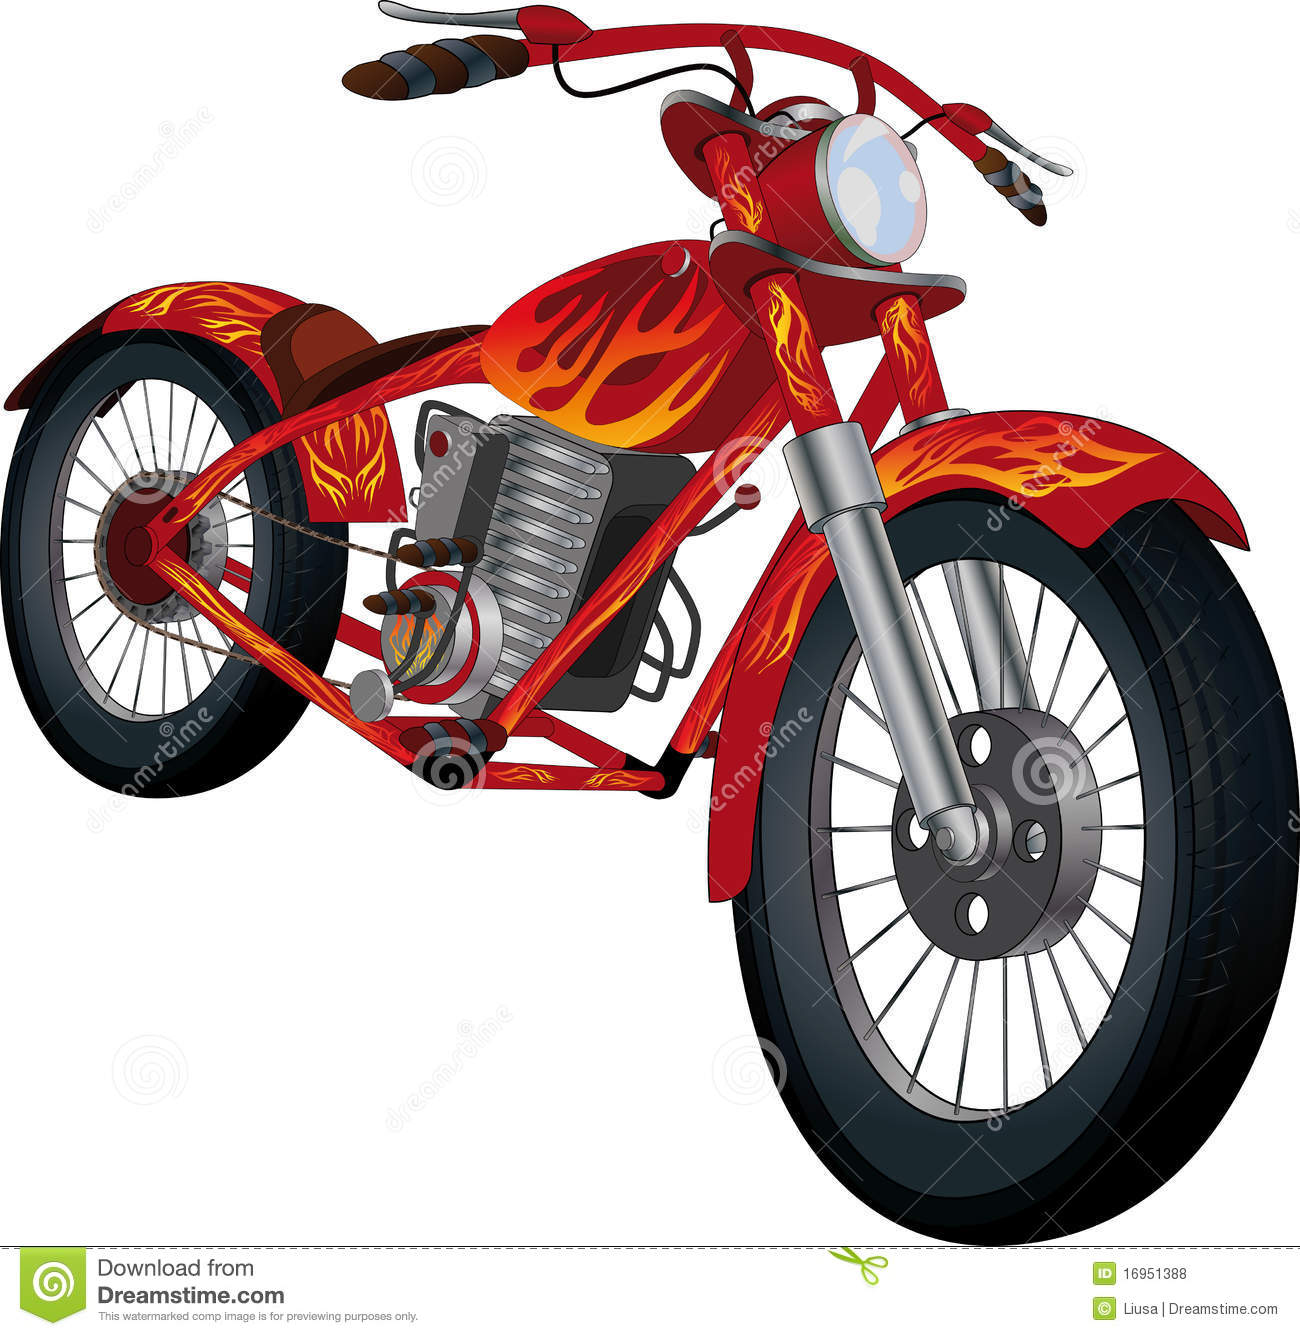 Red Motorcycle With Fiery Drawing Royalty Free Stock Photos Image